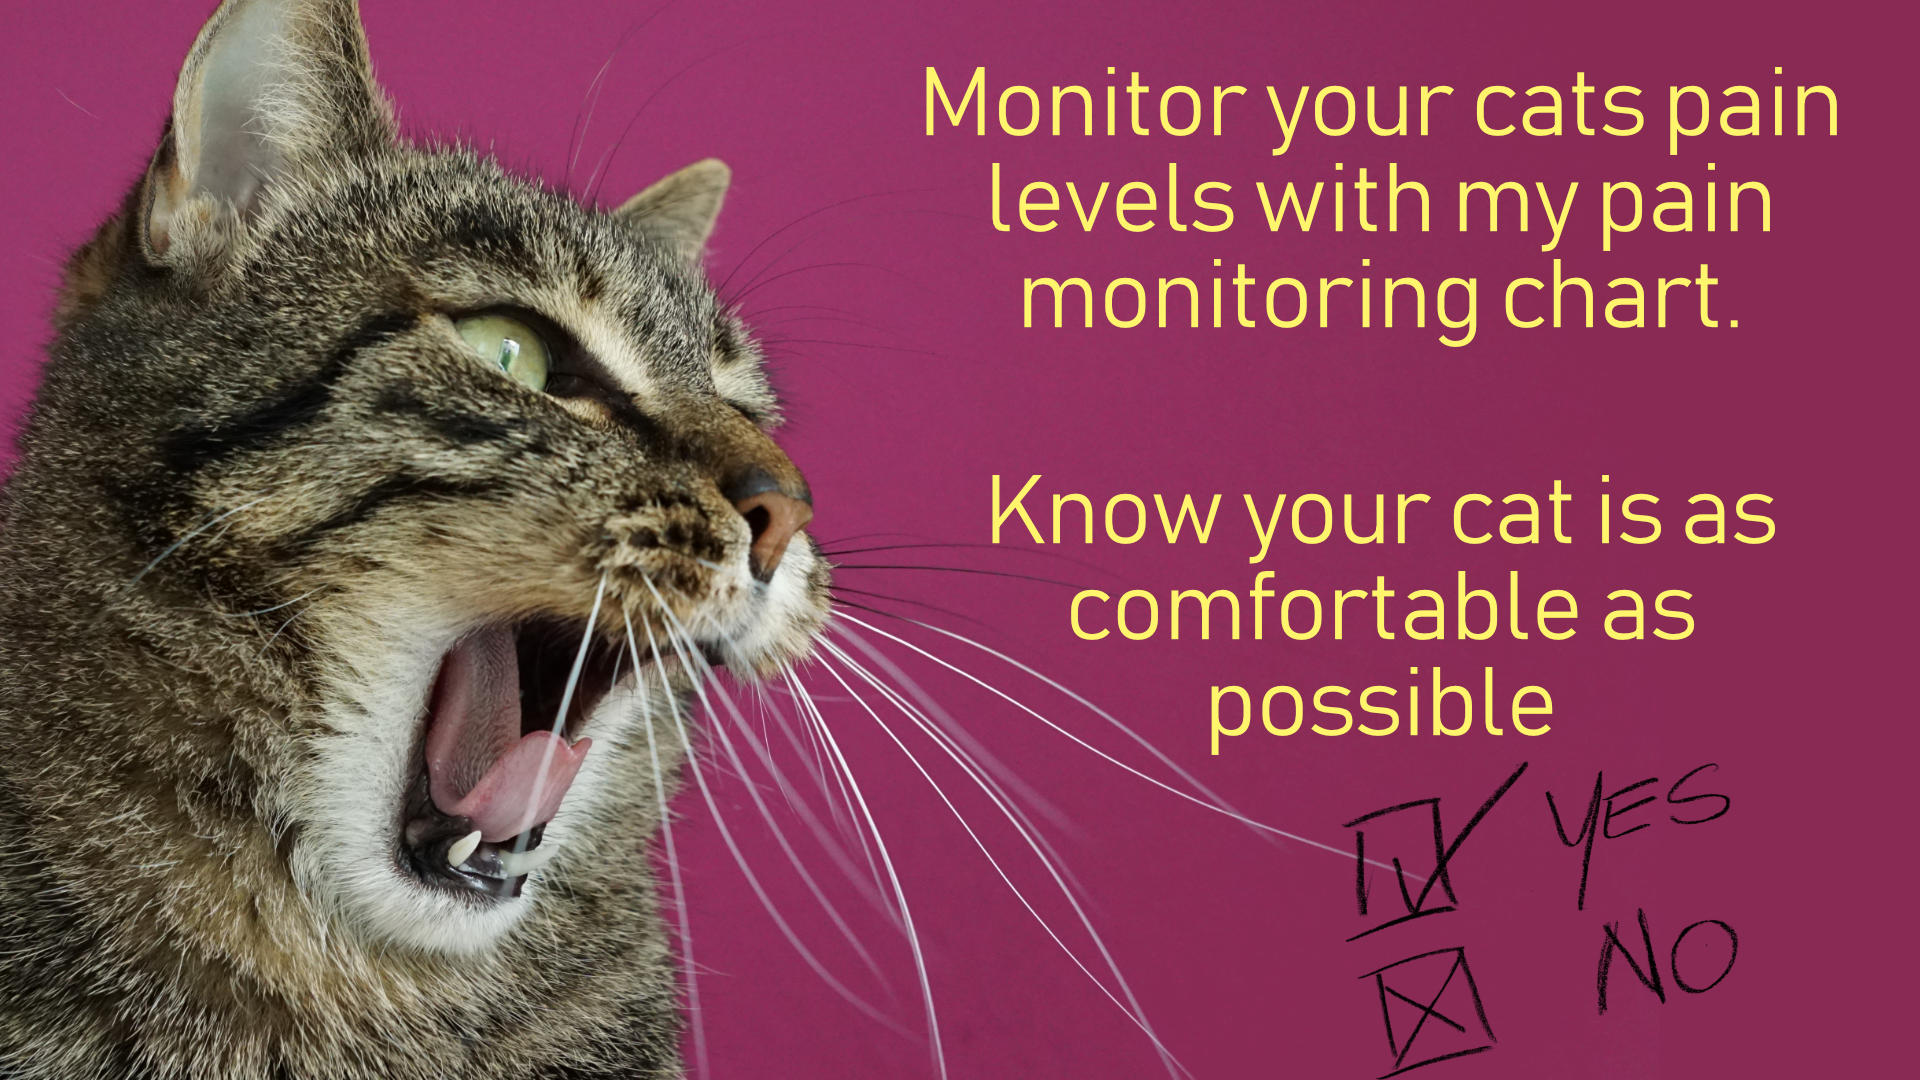 arthritis pain monitoring chart for cats